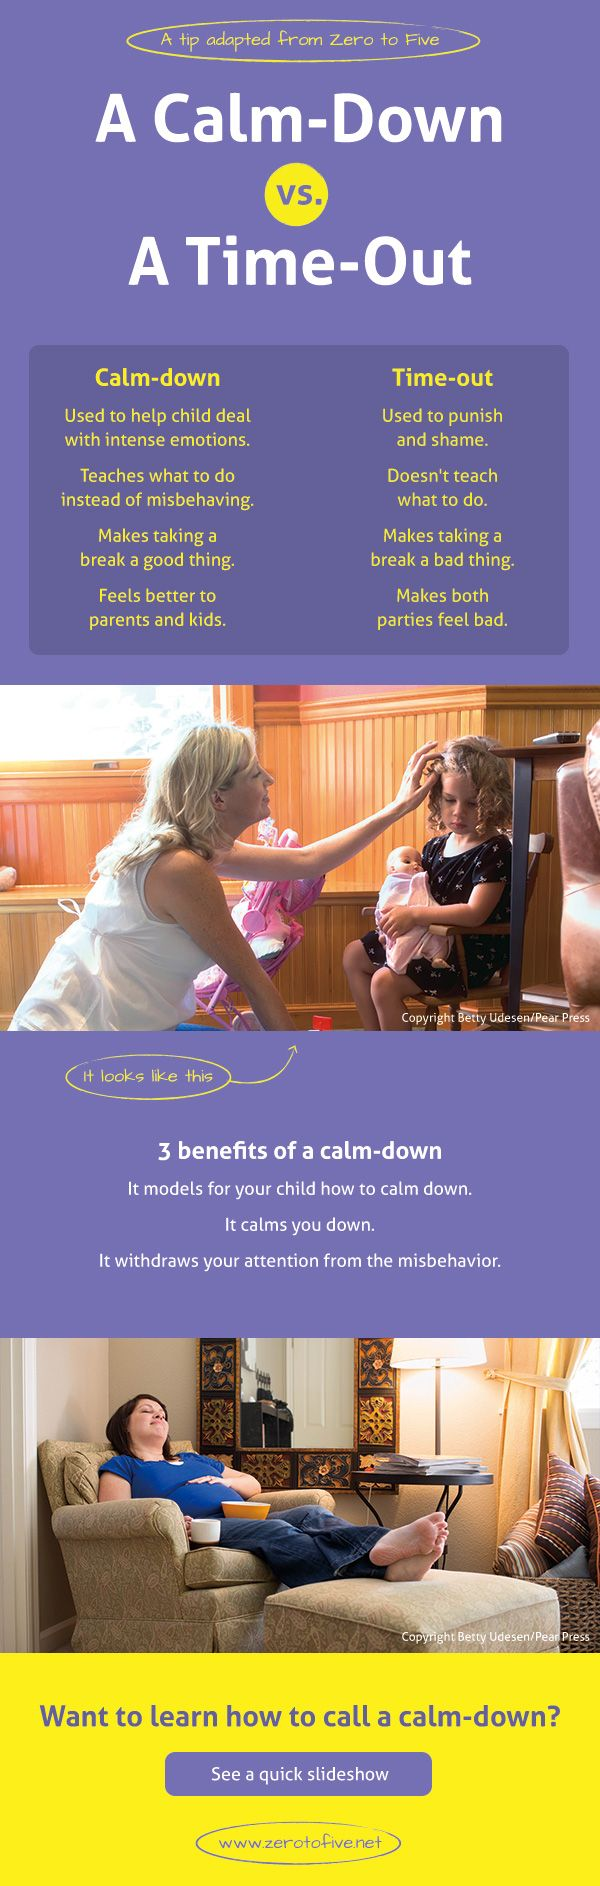 Time-outs are used to punish and shame, but a calm-down helps kids deal with…